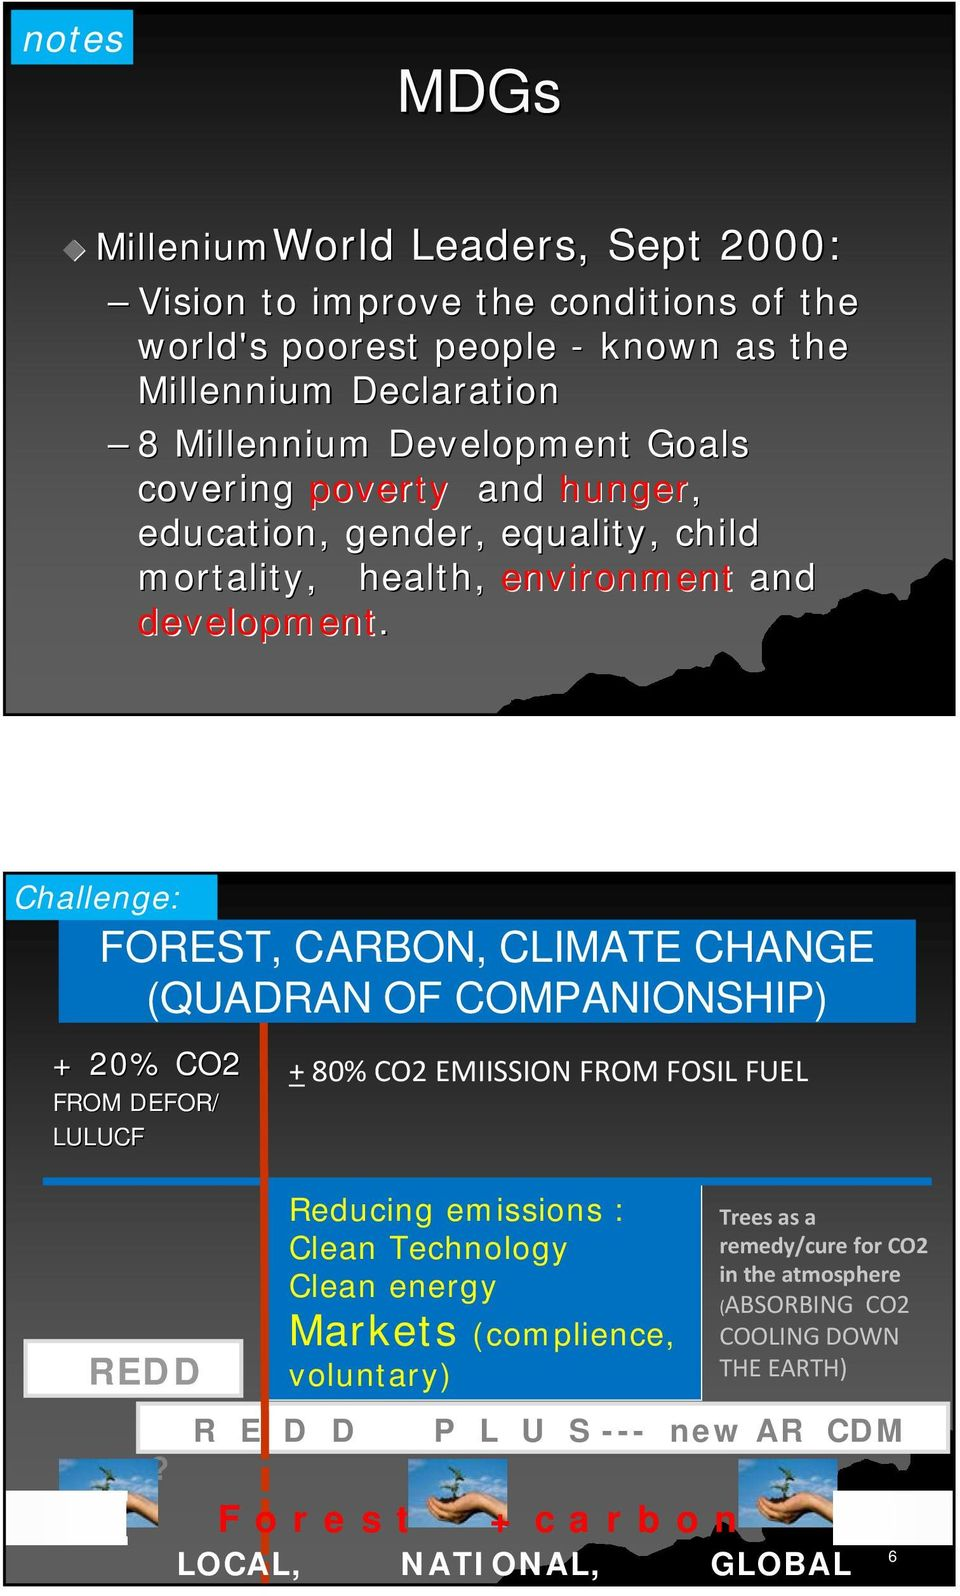 Challenge: FOREST, CARBON, CLIMATE CHANGE (QUADRAN OF COMPANIONSHIP) + 20% CO2 FROM DEFOR/ LULUCF REDD?